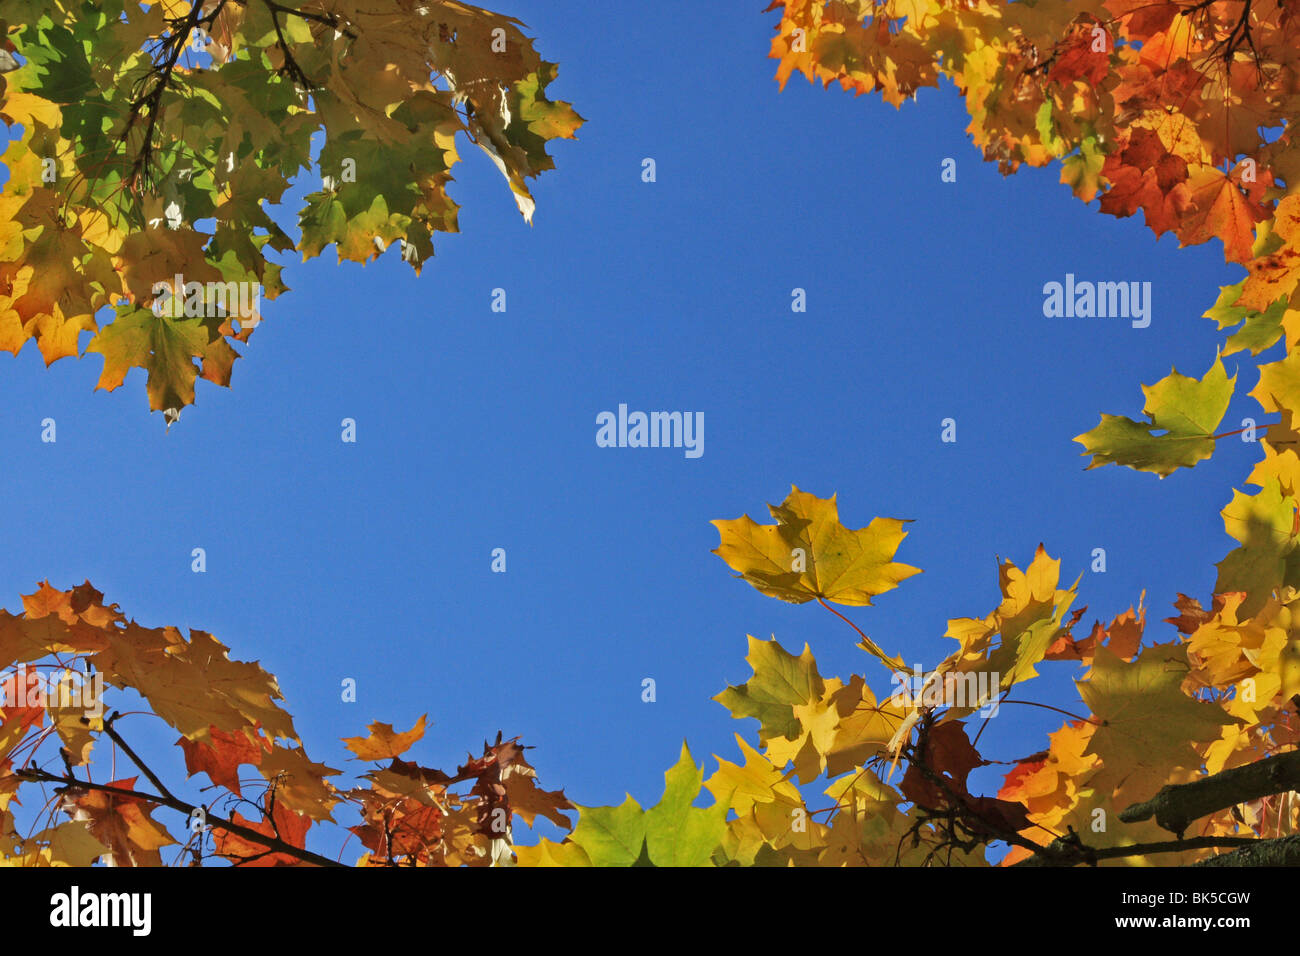 Looking upwards at brightly coloured Autumn leaves against a blue sky. - Stock Image